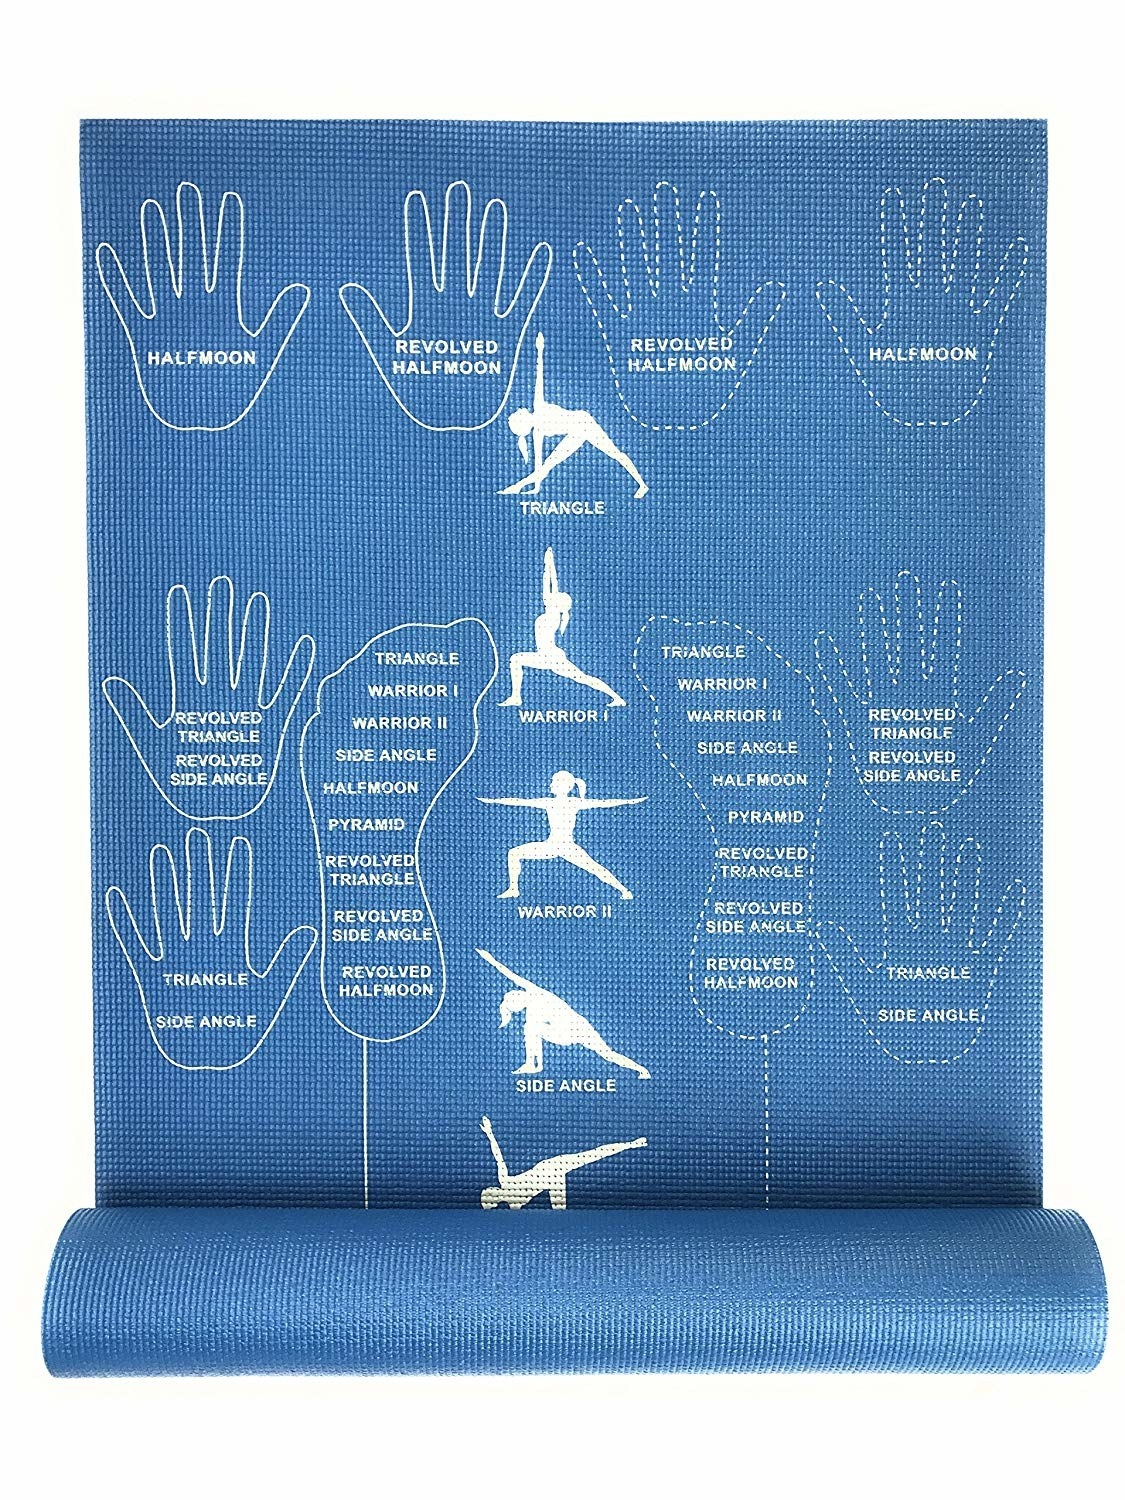 The mat, which shows you what to do for a variety of poses